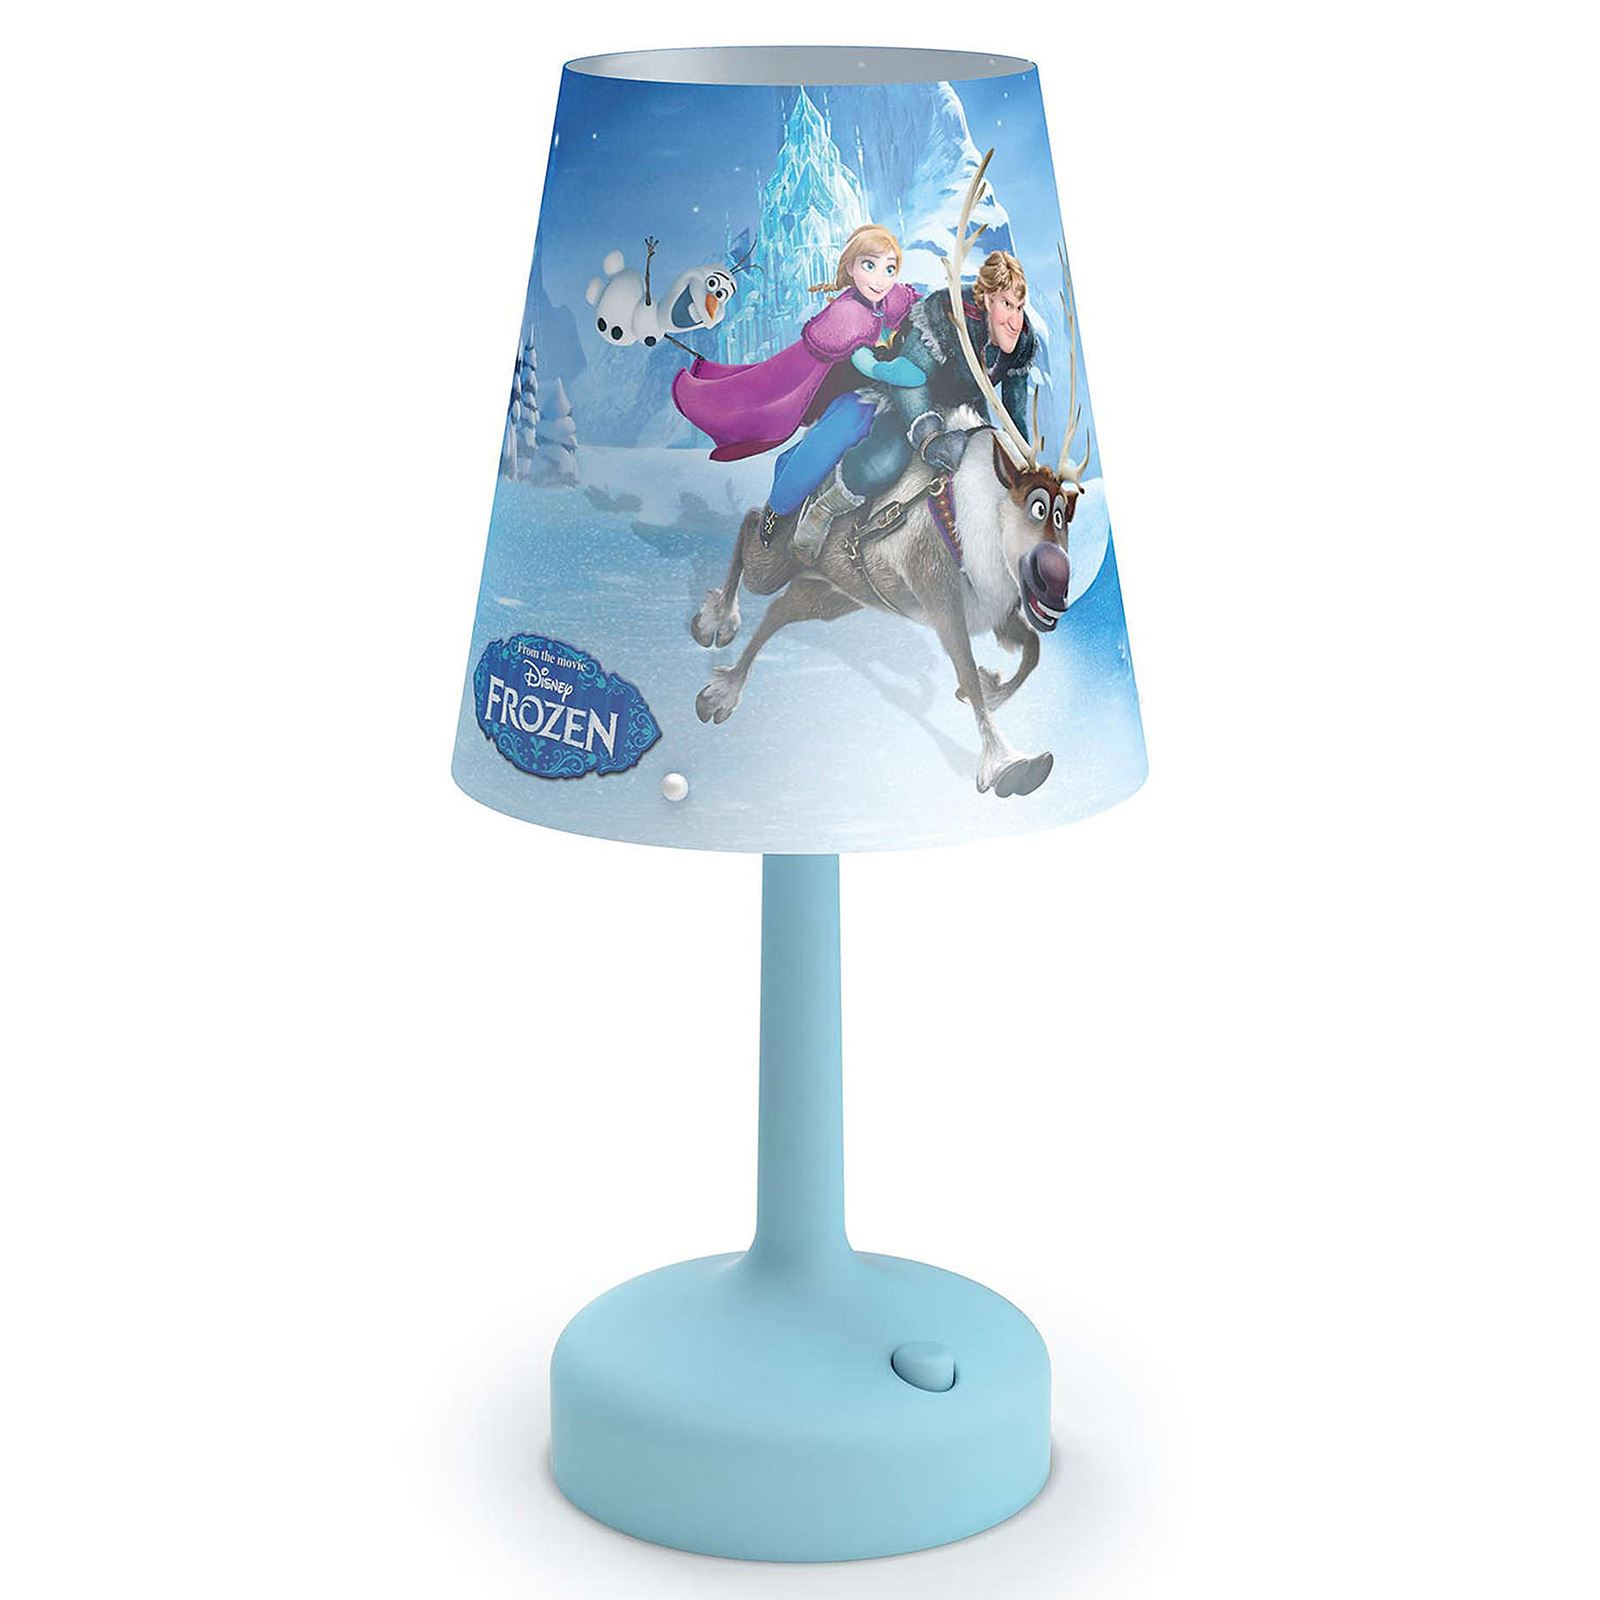 DISNEY FROZEN PORTABLE TABLE LAMP KIDS BEDROOM LIGHTING